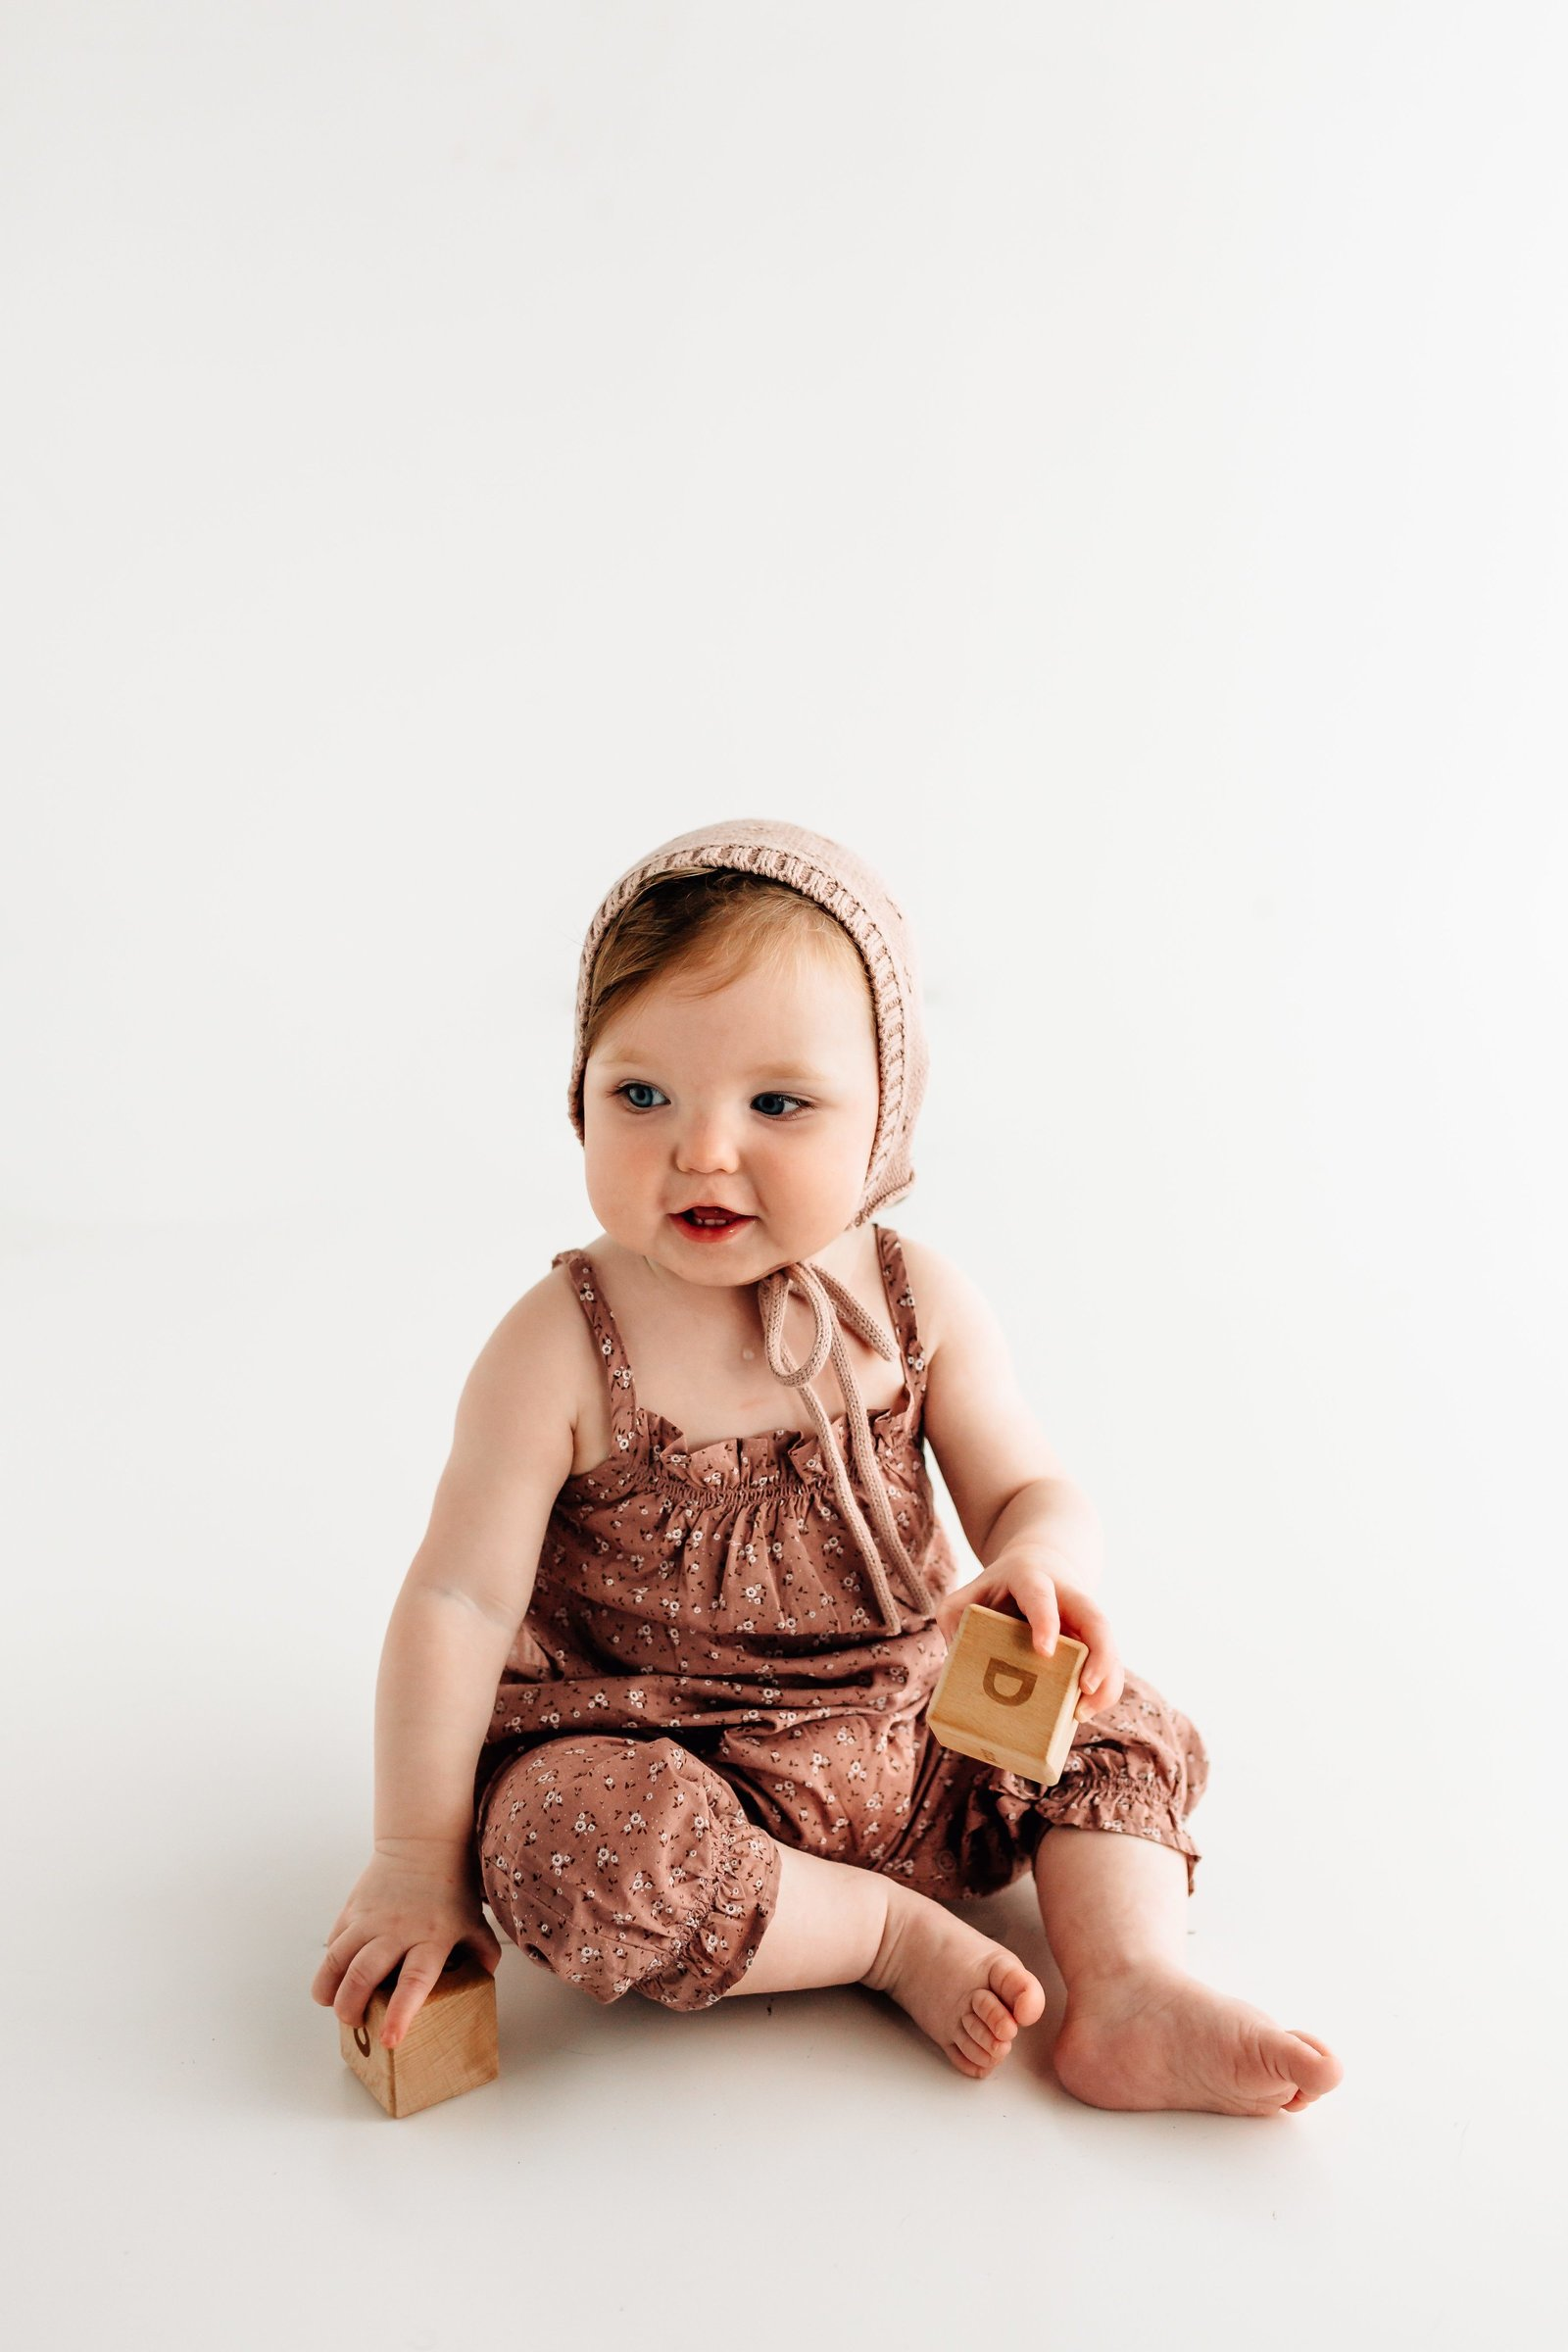 St_Louis_Baby_Photographer_Kelly_Laramore_Photography_18